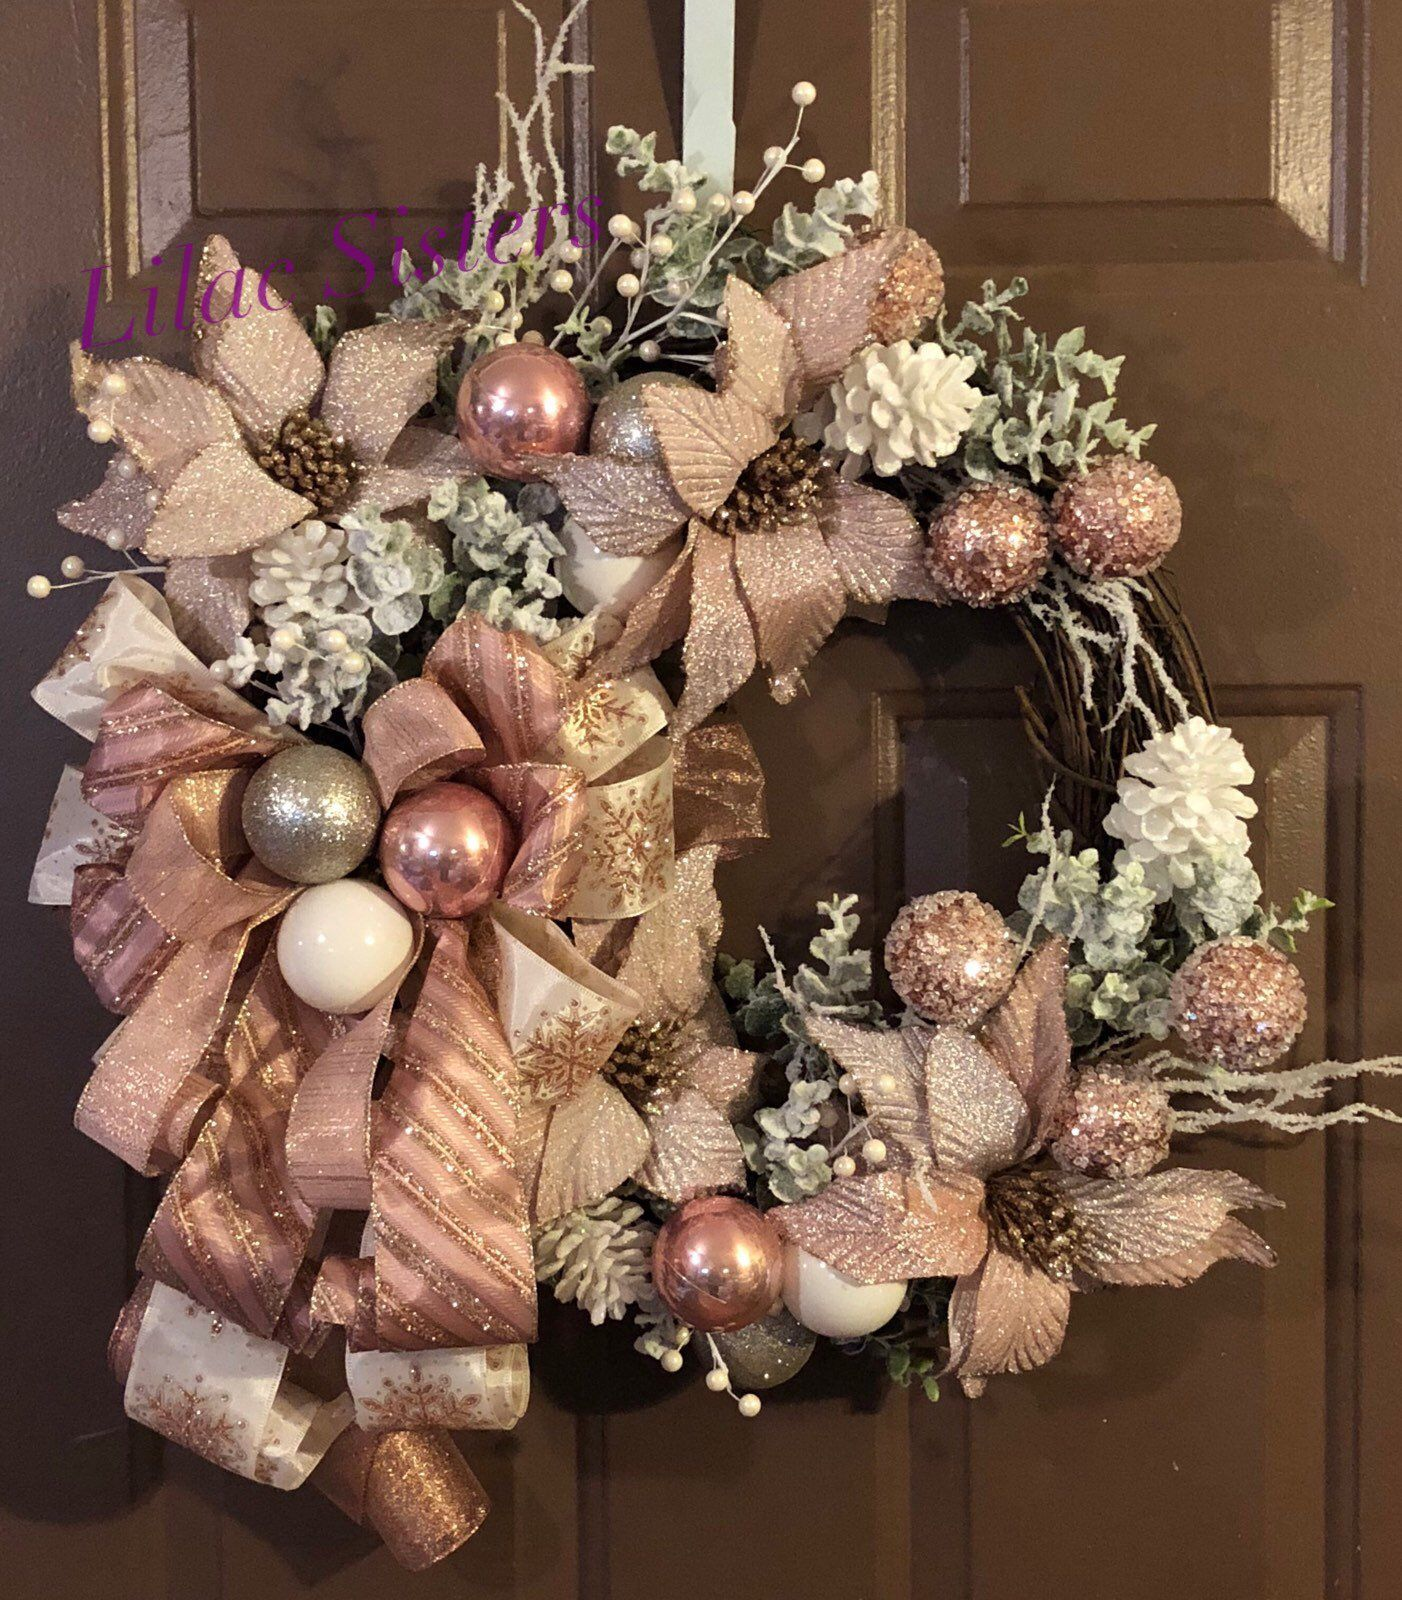 Rose Gold wreath, Christmas Wreath, Elegance, sparkling, festive wreath, holiday wreath images